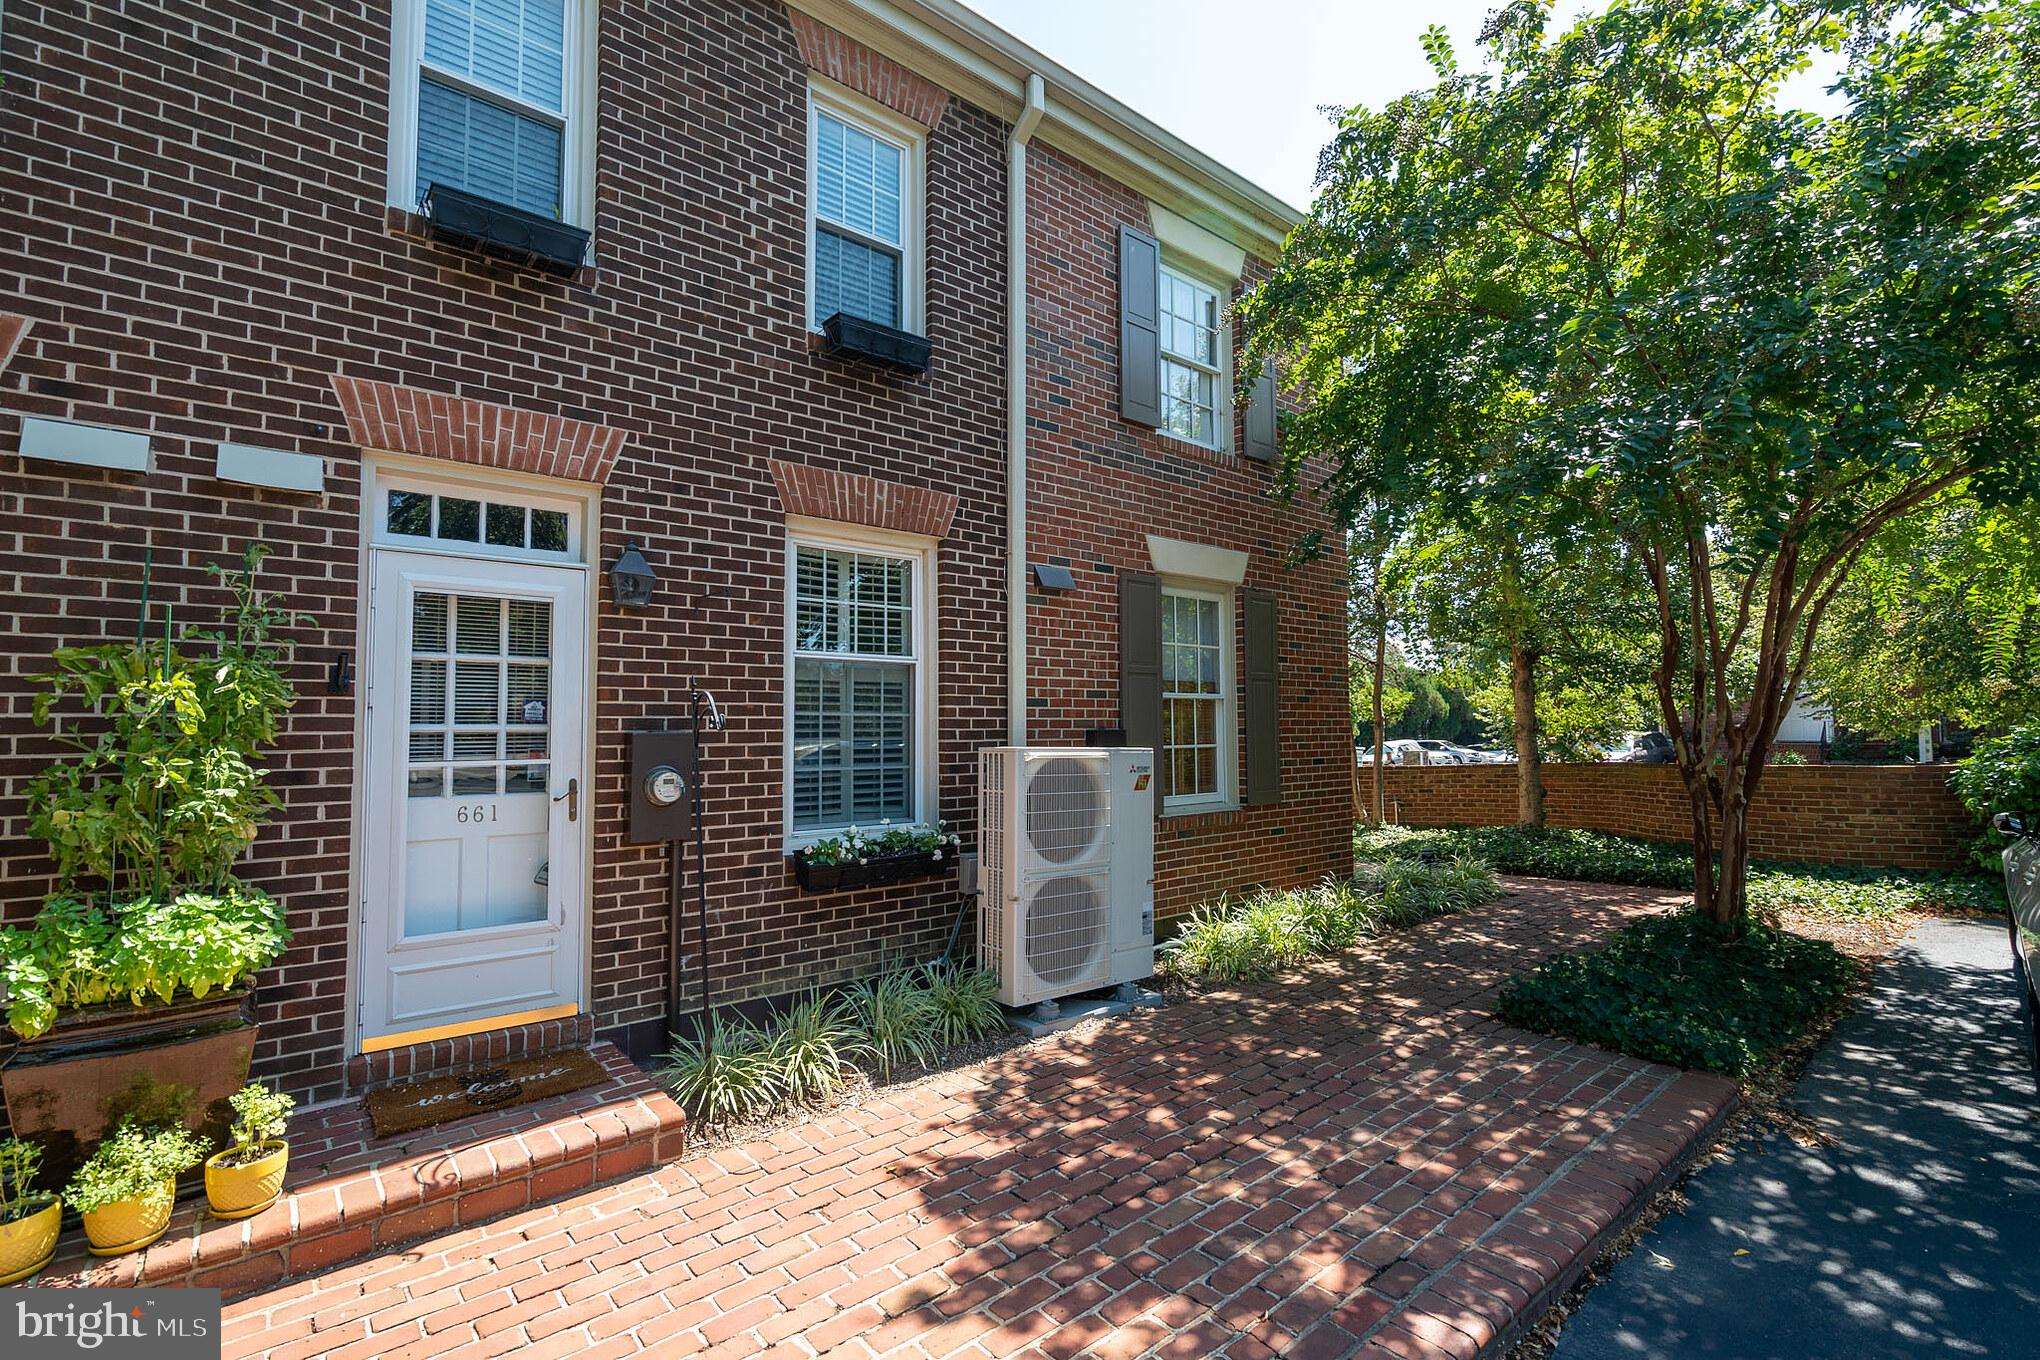 **GREAT Location with 2 off street parking spaces**Excellent condition** 3 finished levels**All brick TH/Condo style living with private brick patio /courtyard setting**Update kitchen and bathrooms**On  trend colors throughout**Cozy Fireplace**New in 2019 HVAC System and 2nd bathroom**Convenient to shopping, restaurants, metro and commuter routes and more!!!!